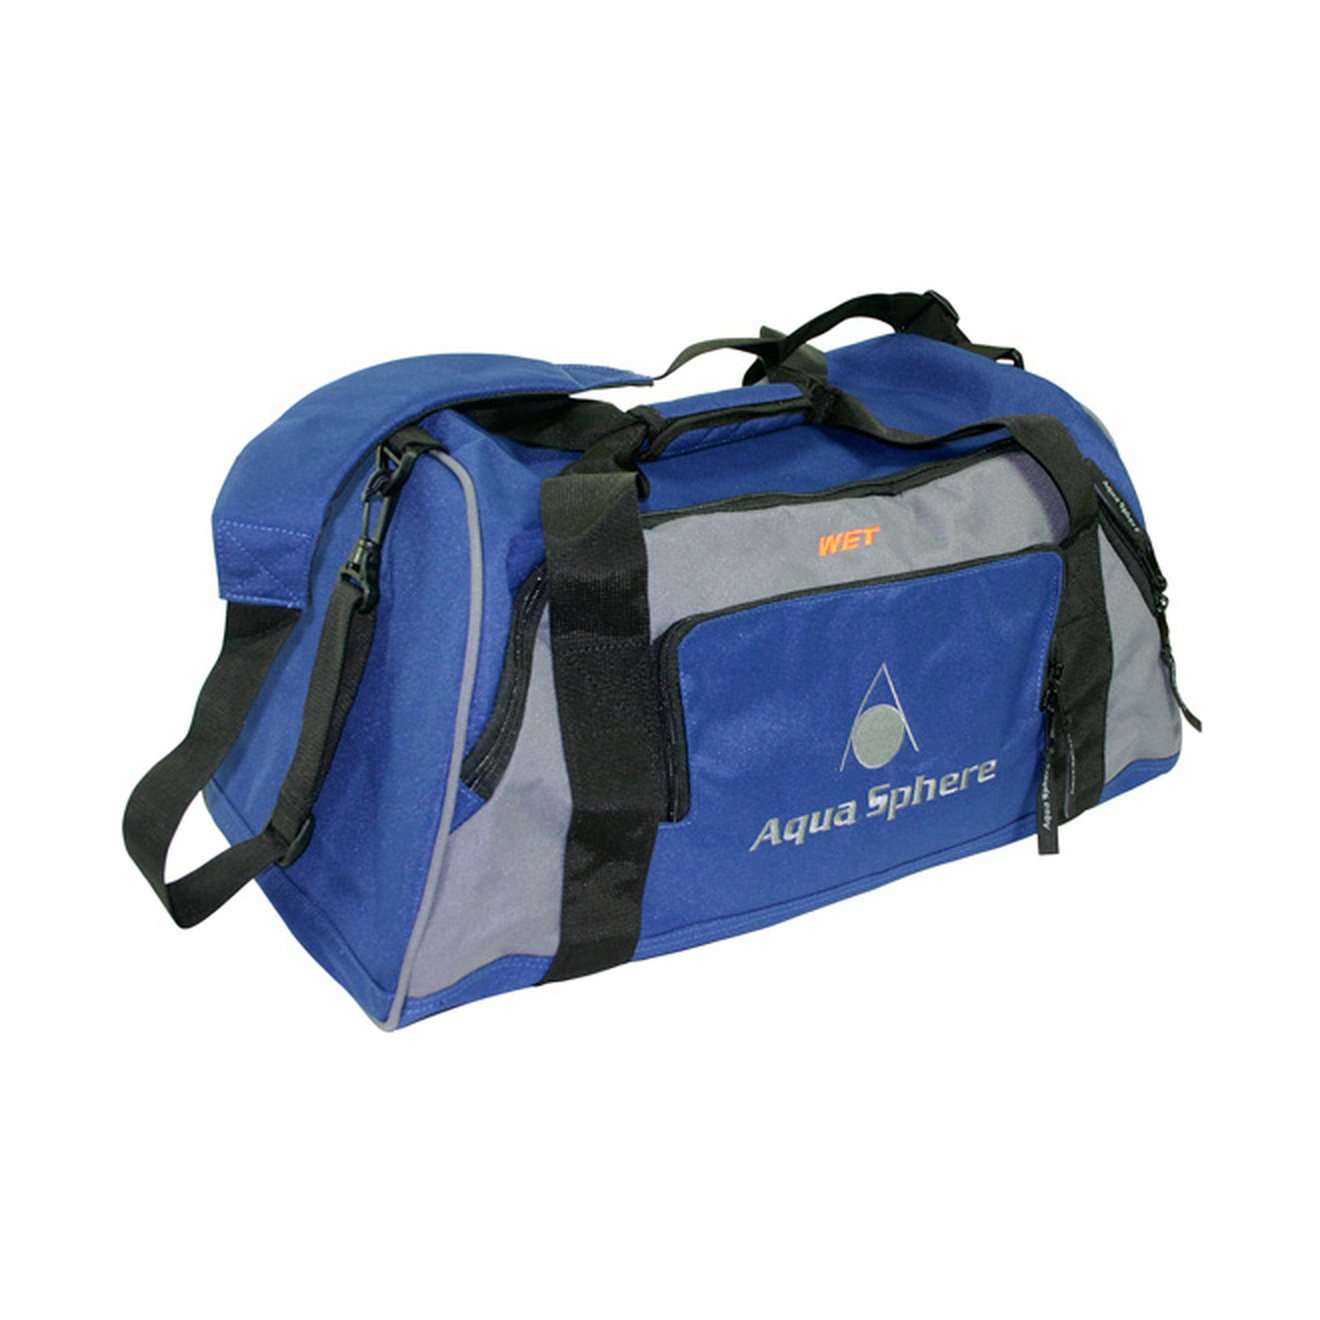 Aqua Sphere Wet/Dry Swimming Duffel